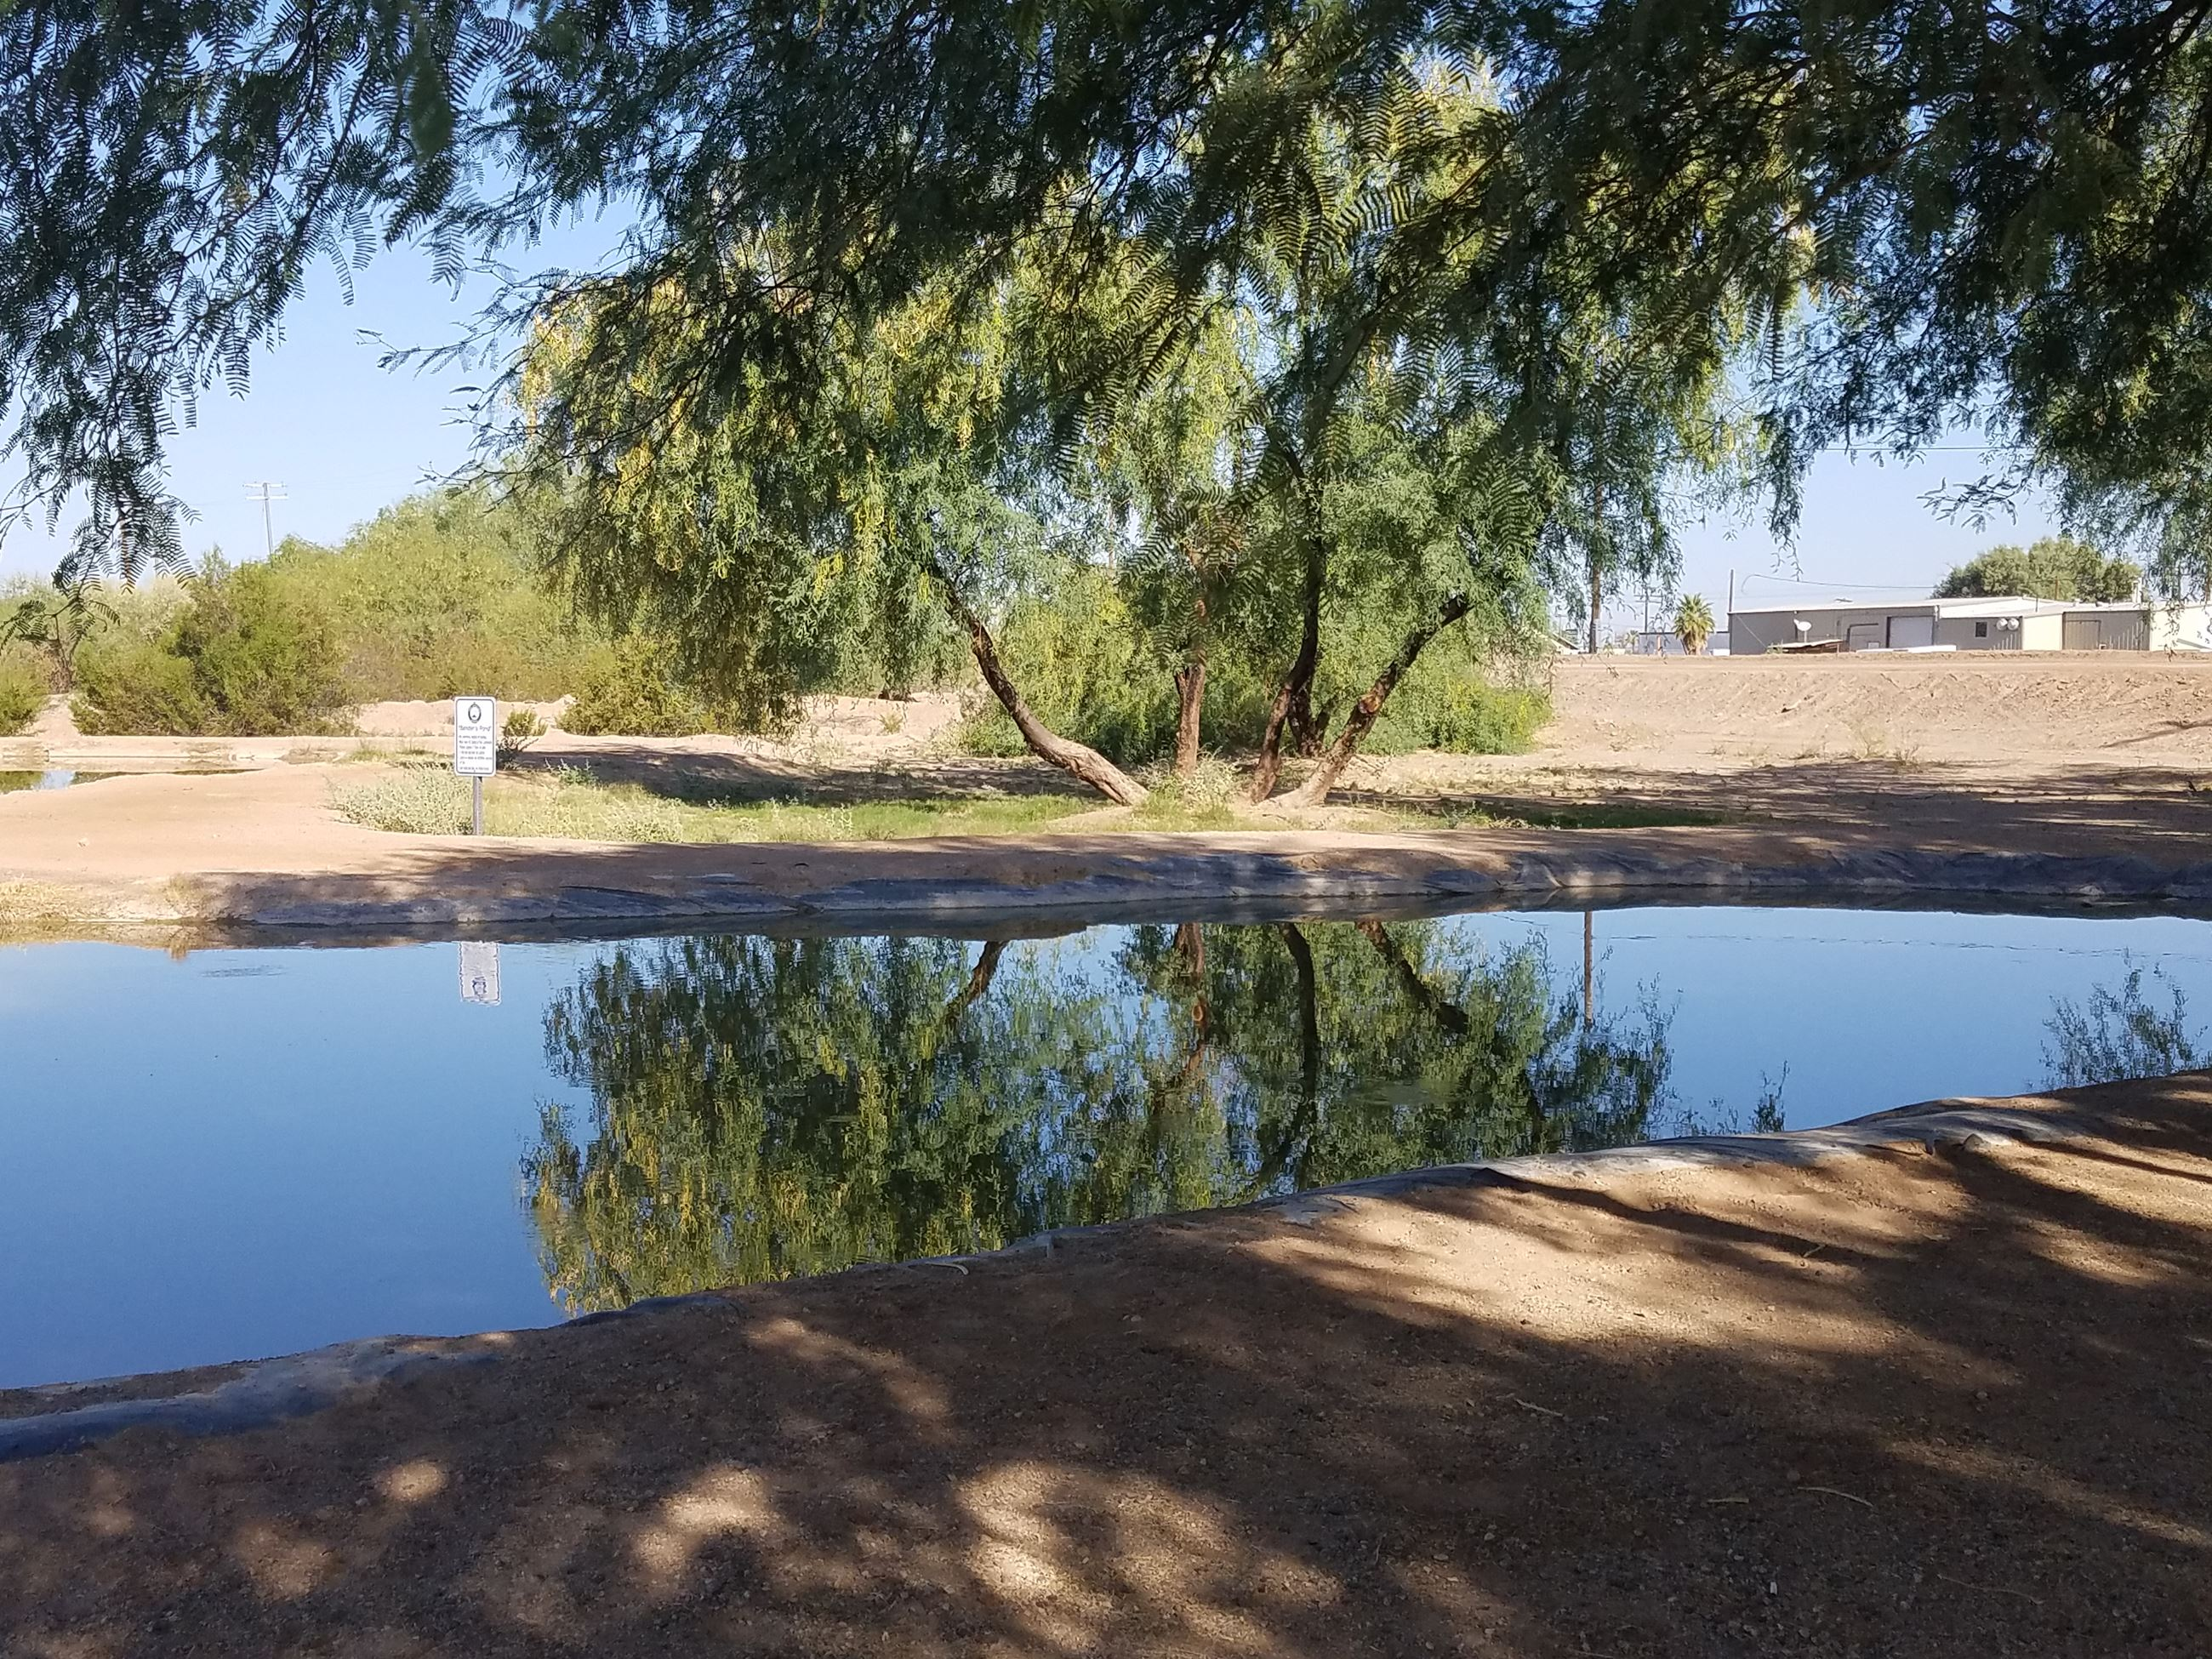 Morning under the mesquite tree at Gila Bend's Bender's Pond